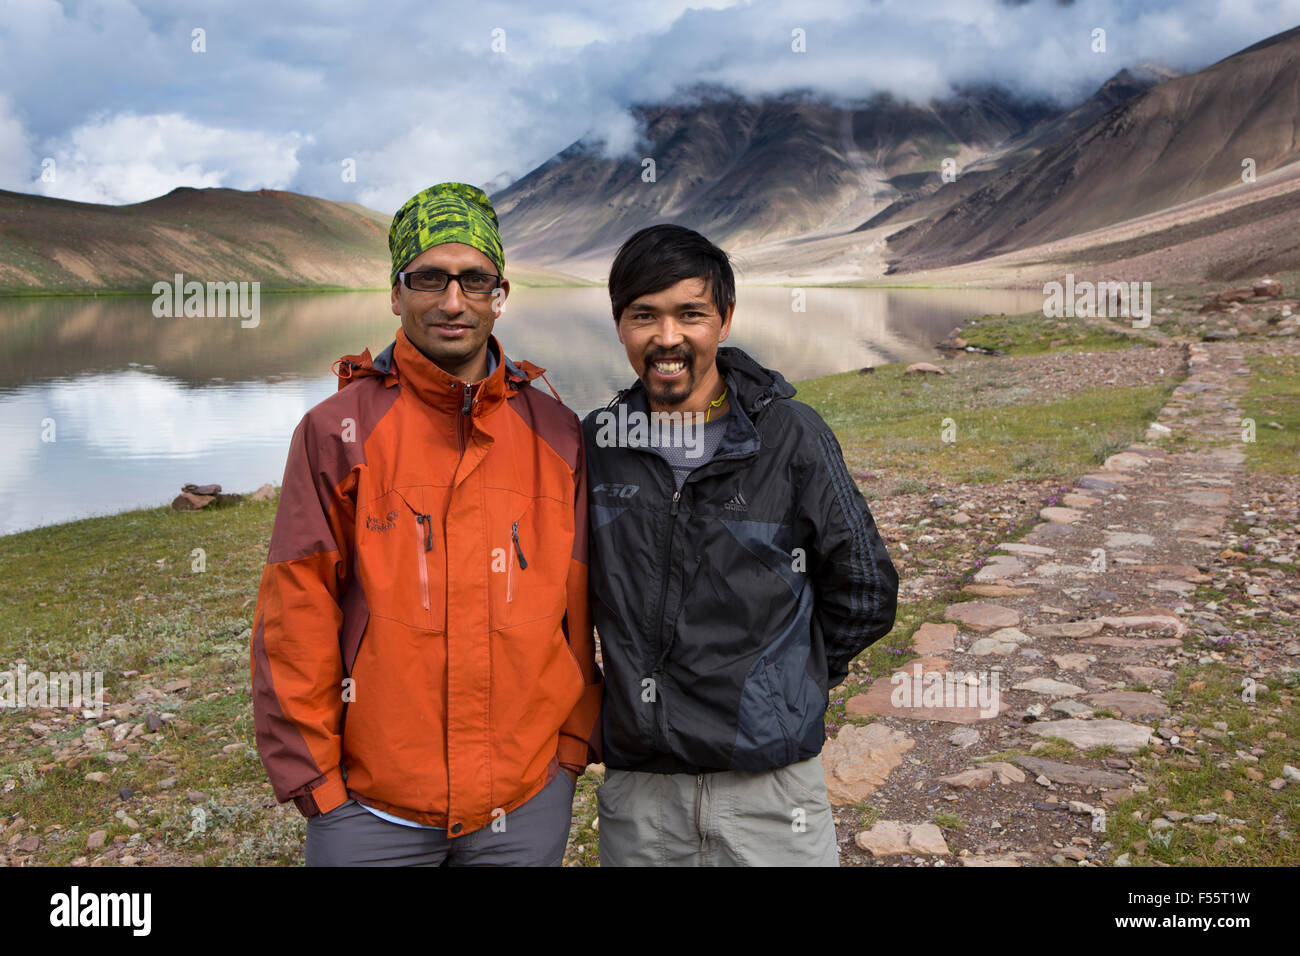 India, Himachal Pradesh, Spiti, Chandra Taal, Full Moon Lake, local driver & guide posing for early morning - Stock Image